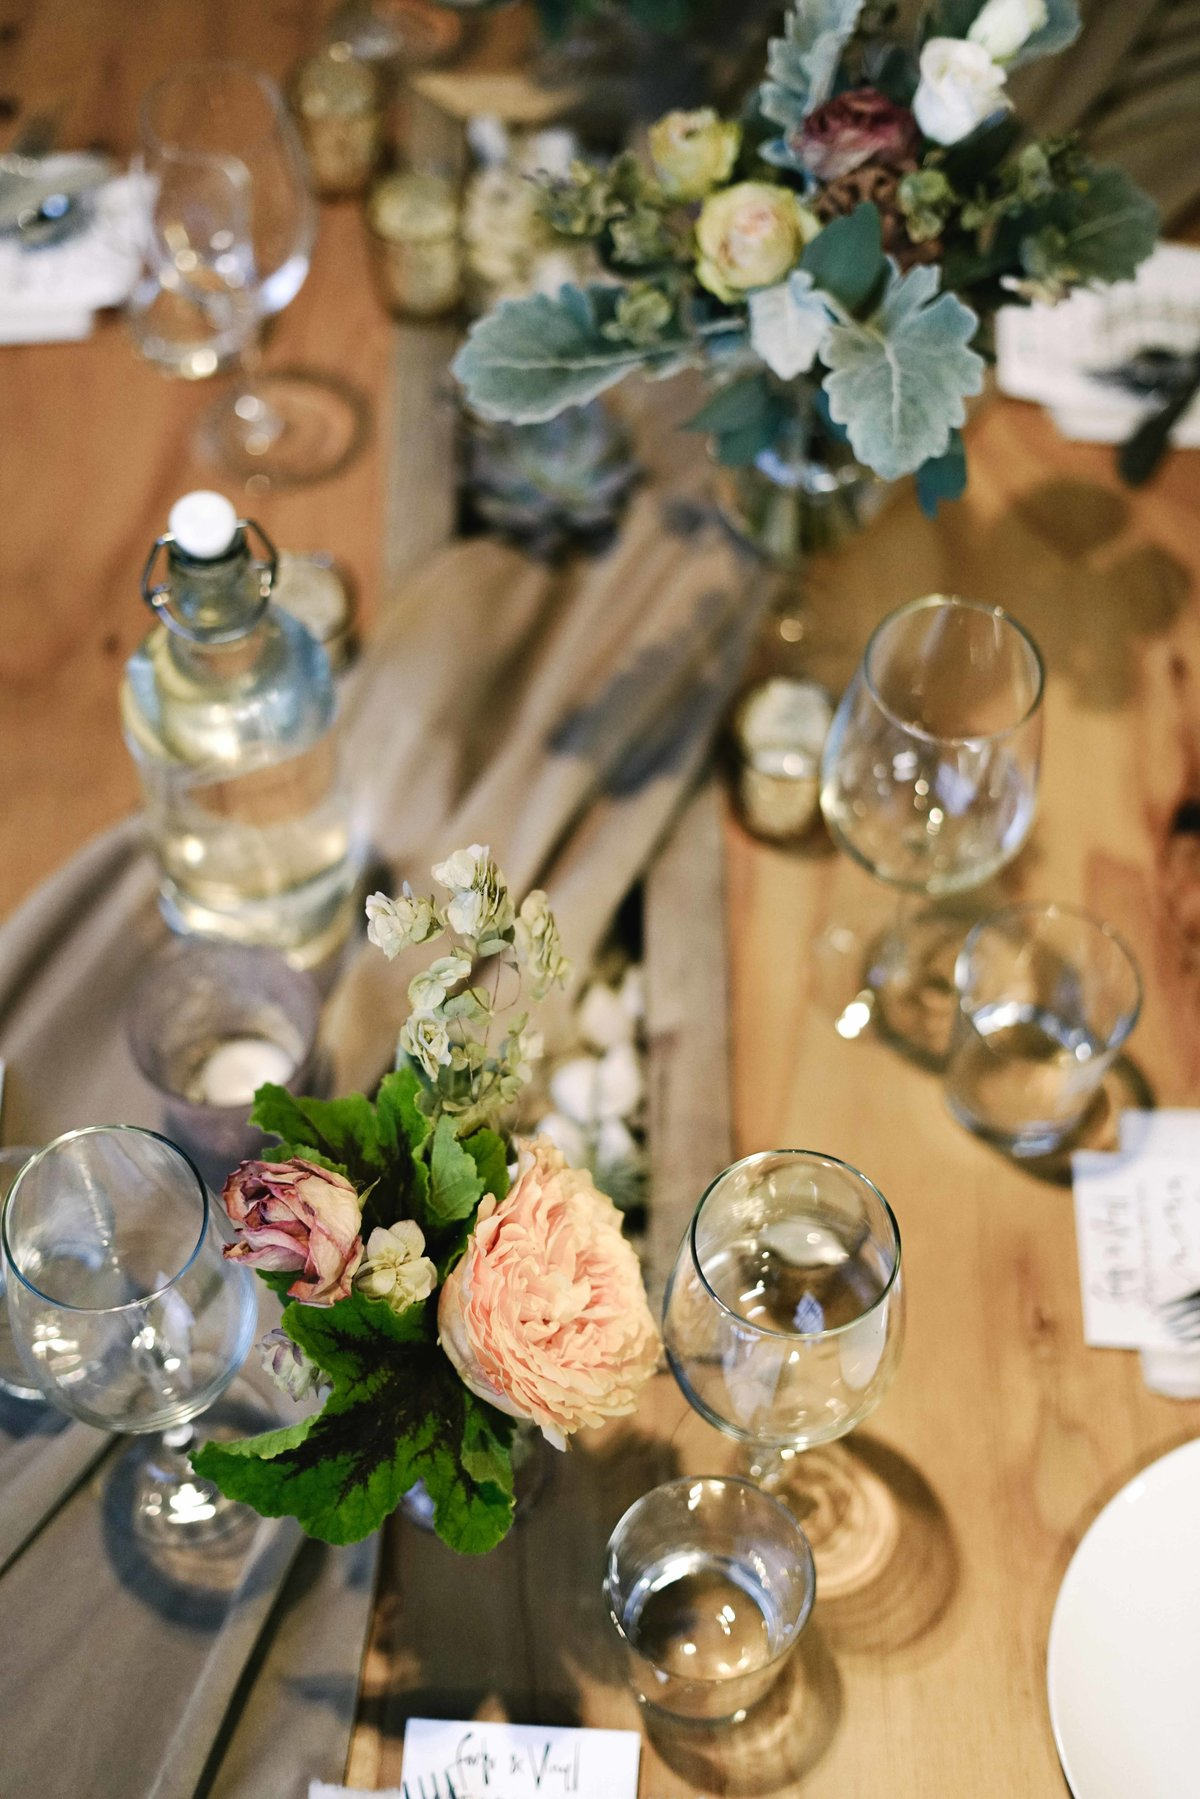 Dinner party floral centerpieces